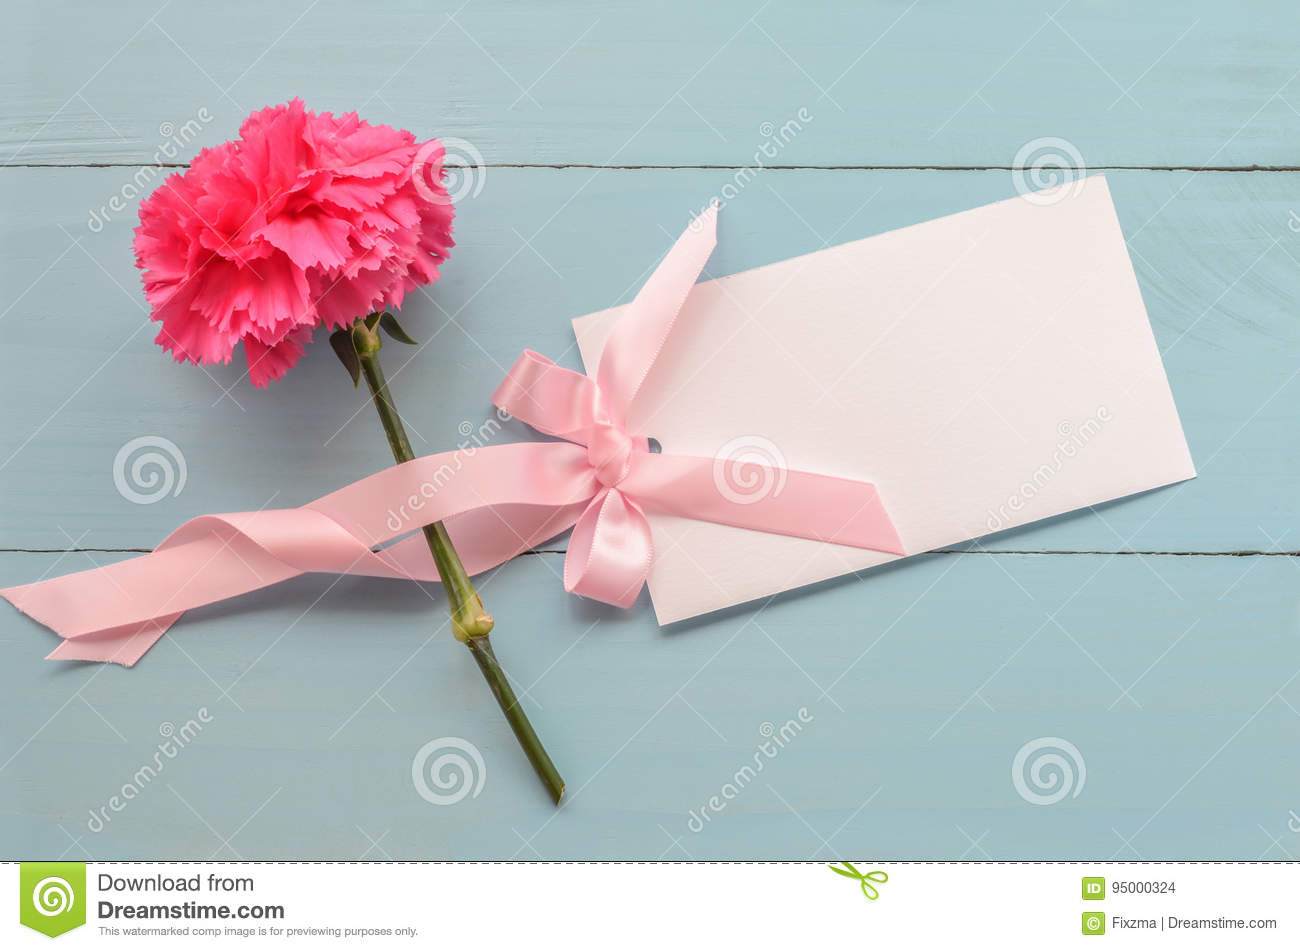 Blank White Greeting Card With Pink Carnation Flower Stock Photo